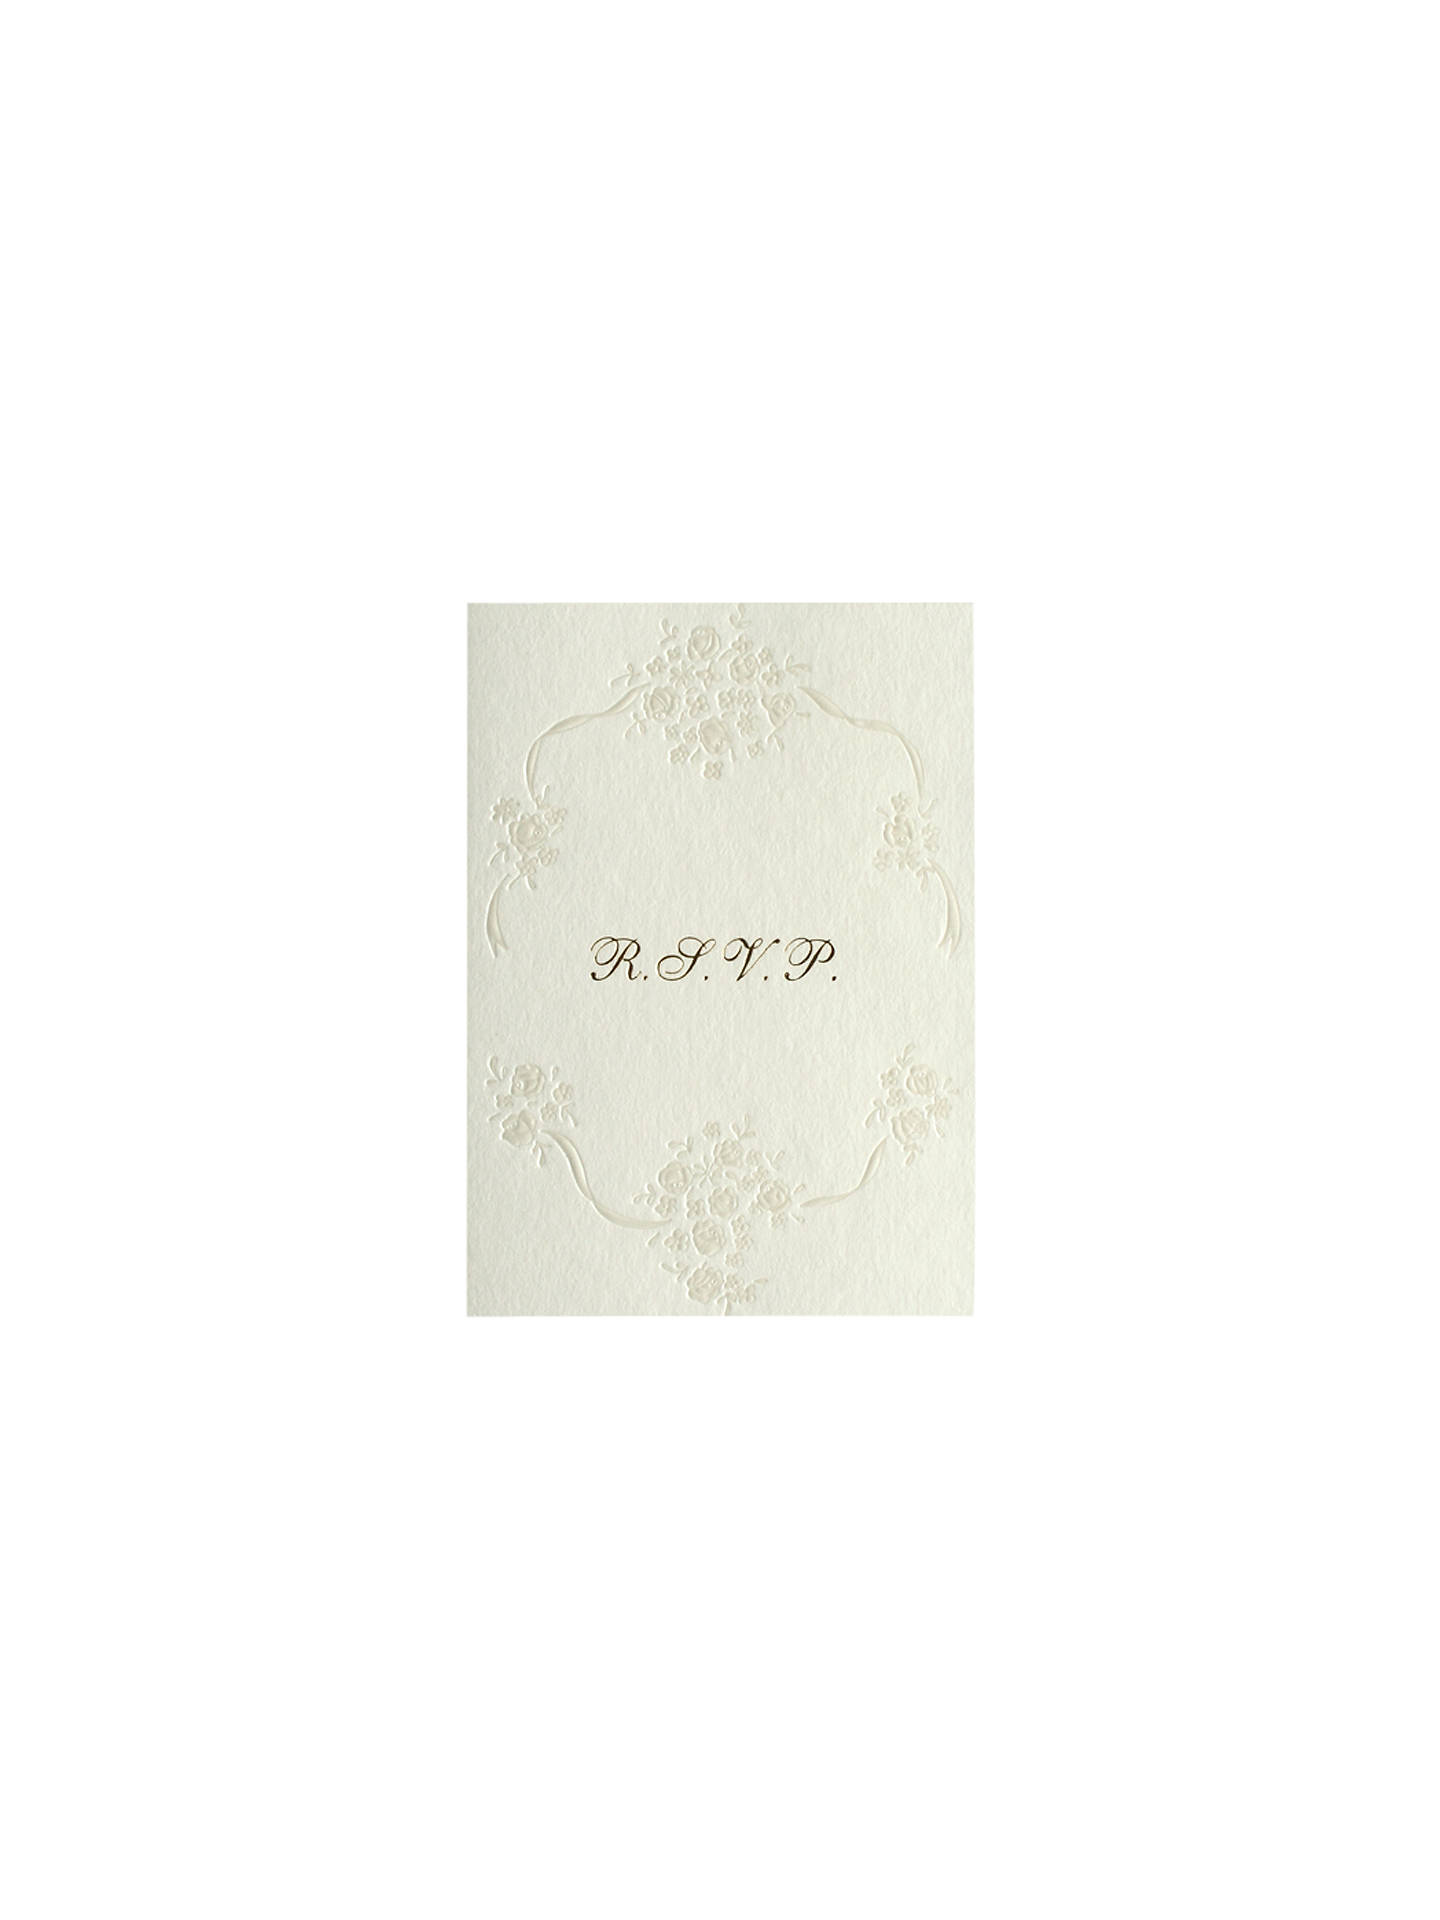 BuyCCA Pearls Personalised Wedding RSVP Reply Cards, Pack of 60, Gold Online at johnlewis.com